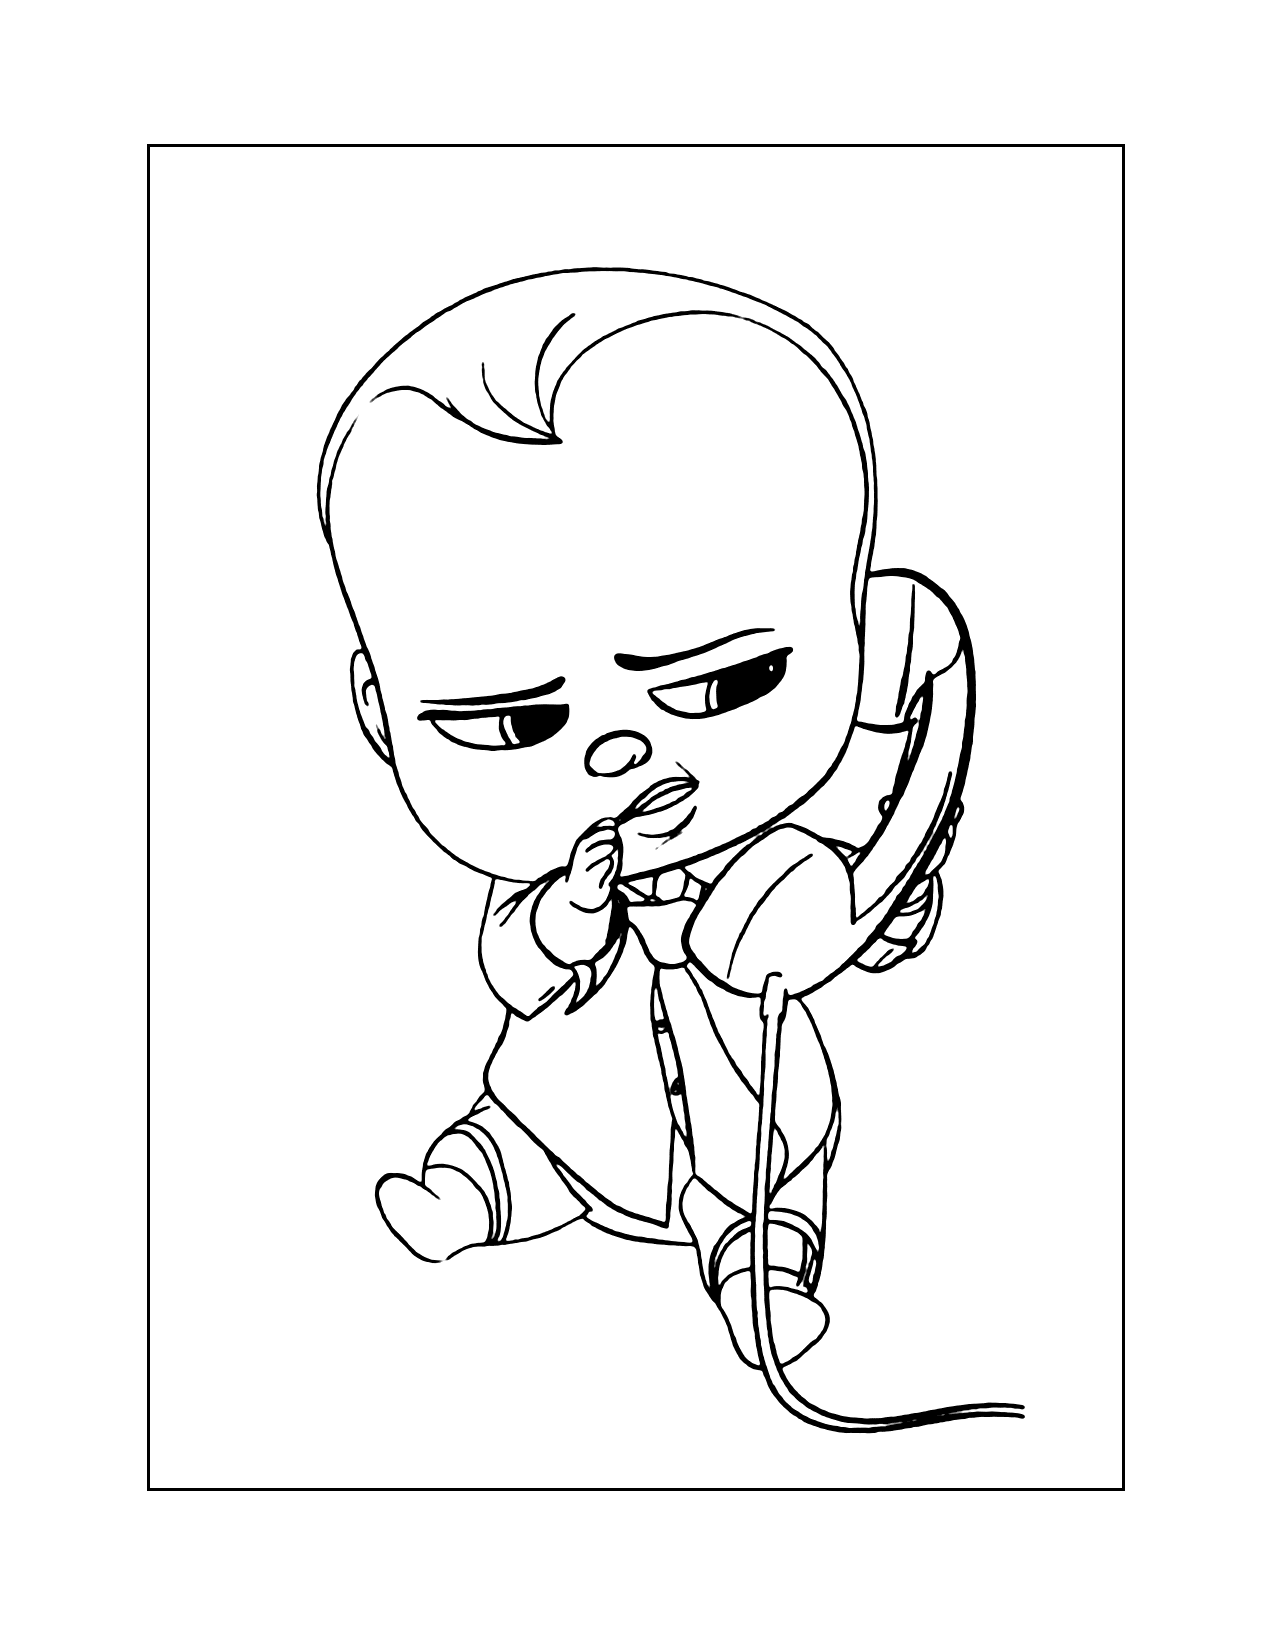 Boss Baby On The Phone Coloring Page